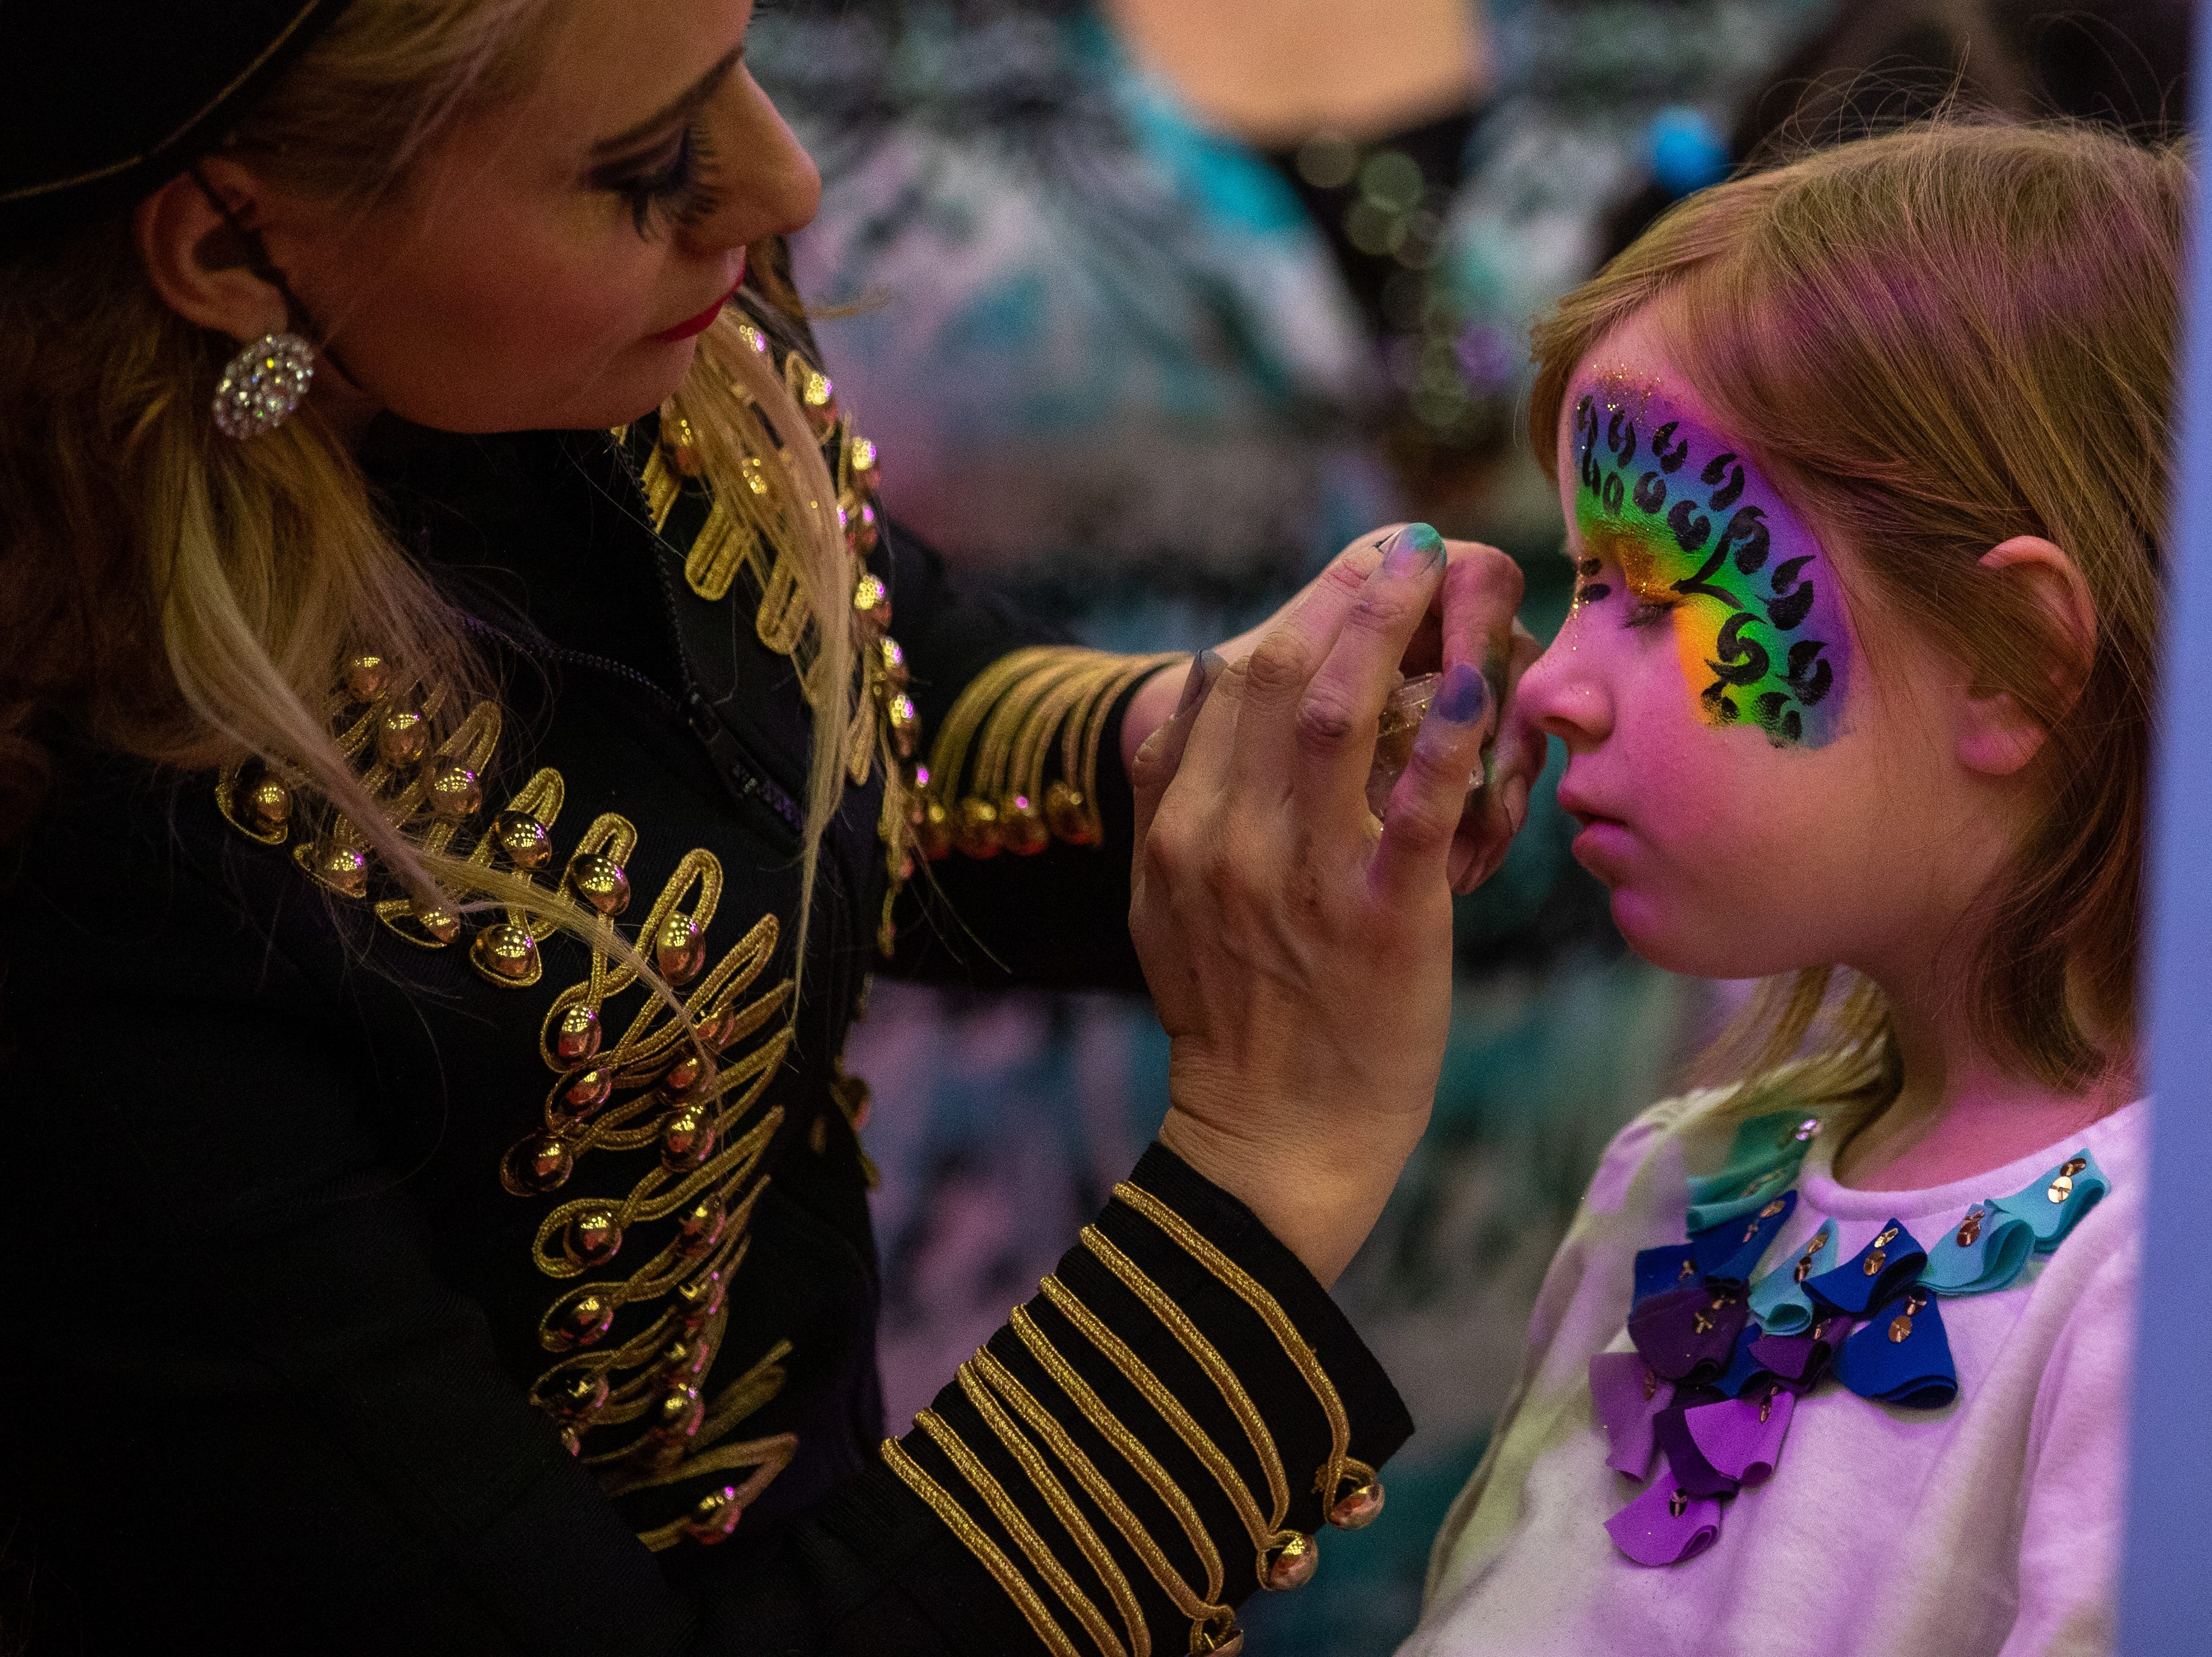 More rainbow cheetah artwork was created at the face painting station during intermission of the Kosair Shrine Circus, Saturday, Feb. 9, 2019 in Louisville Ky.